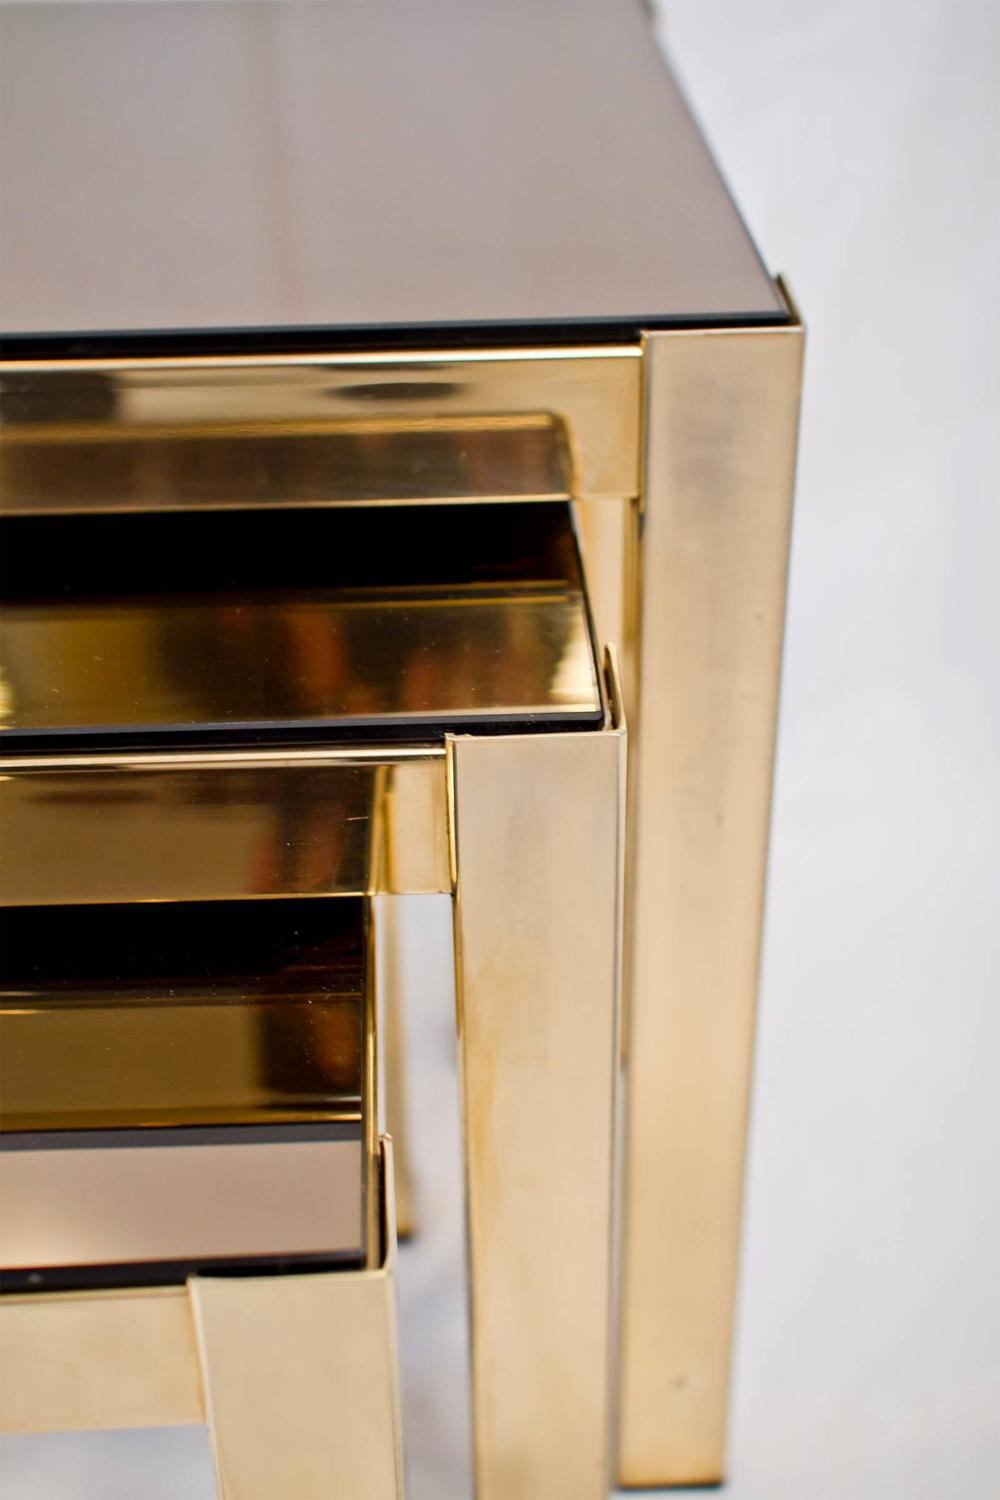 Gold plated nesting tables joevin ortjens galerie Copper countertops cost